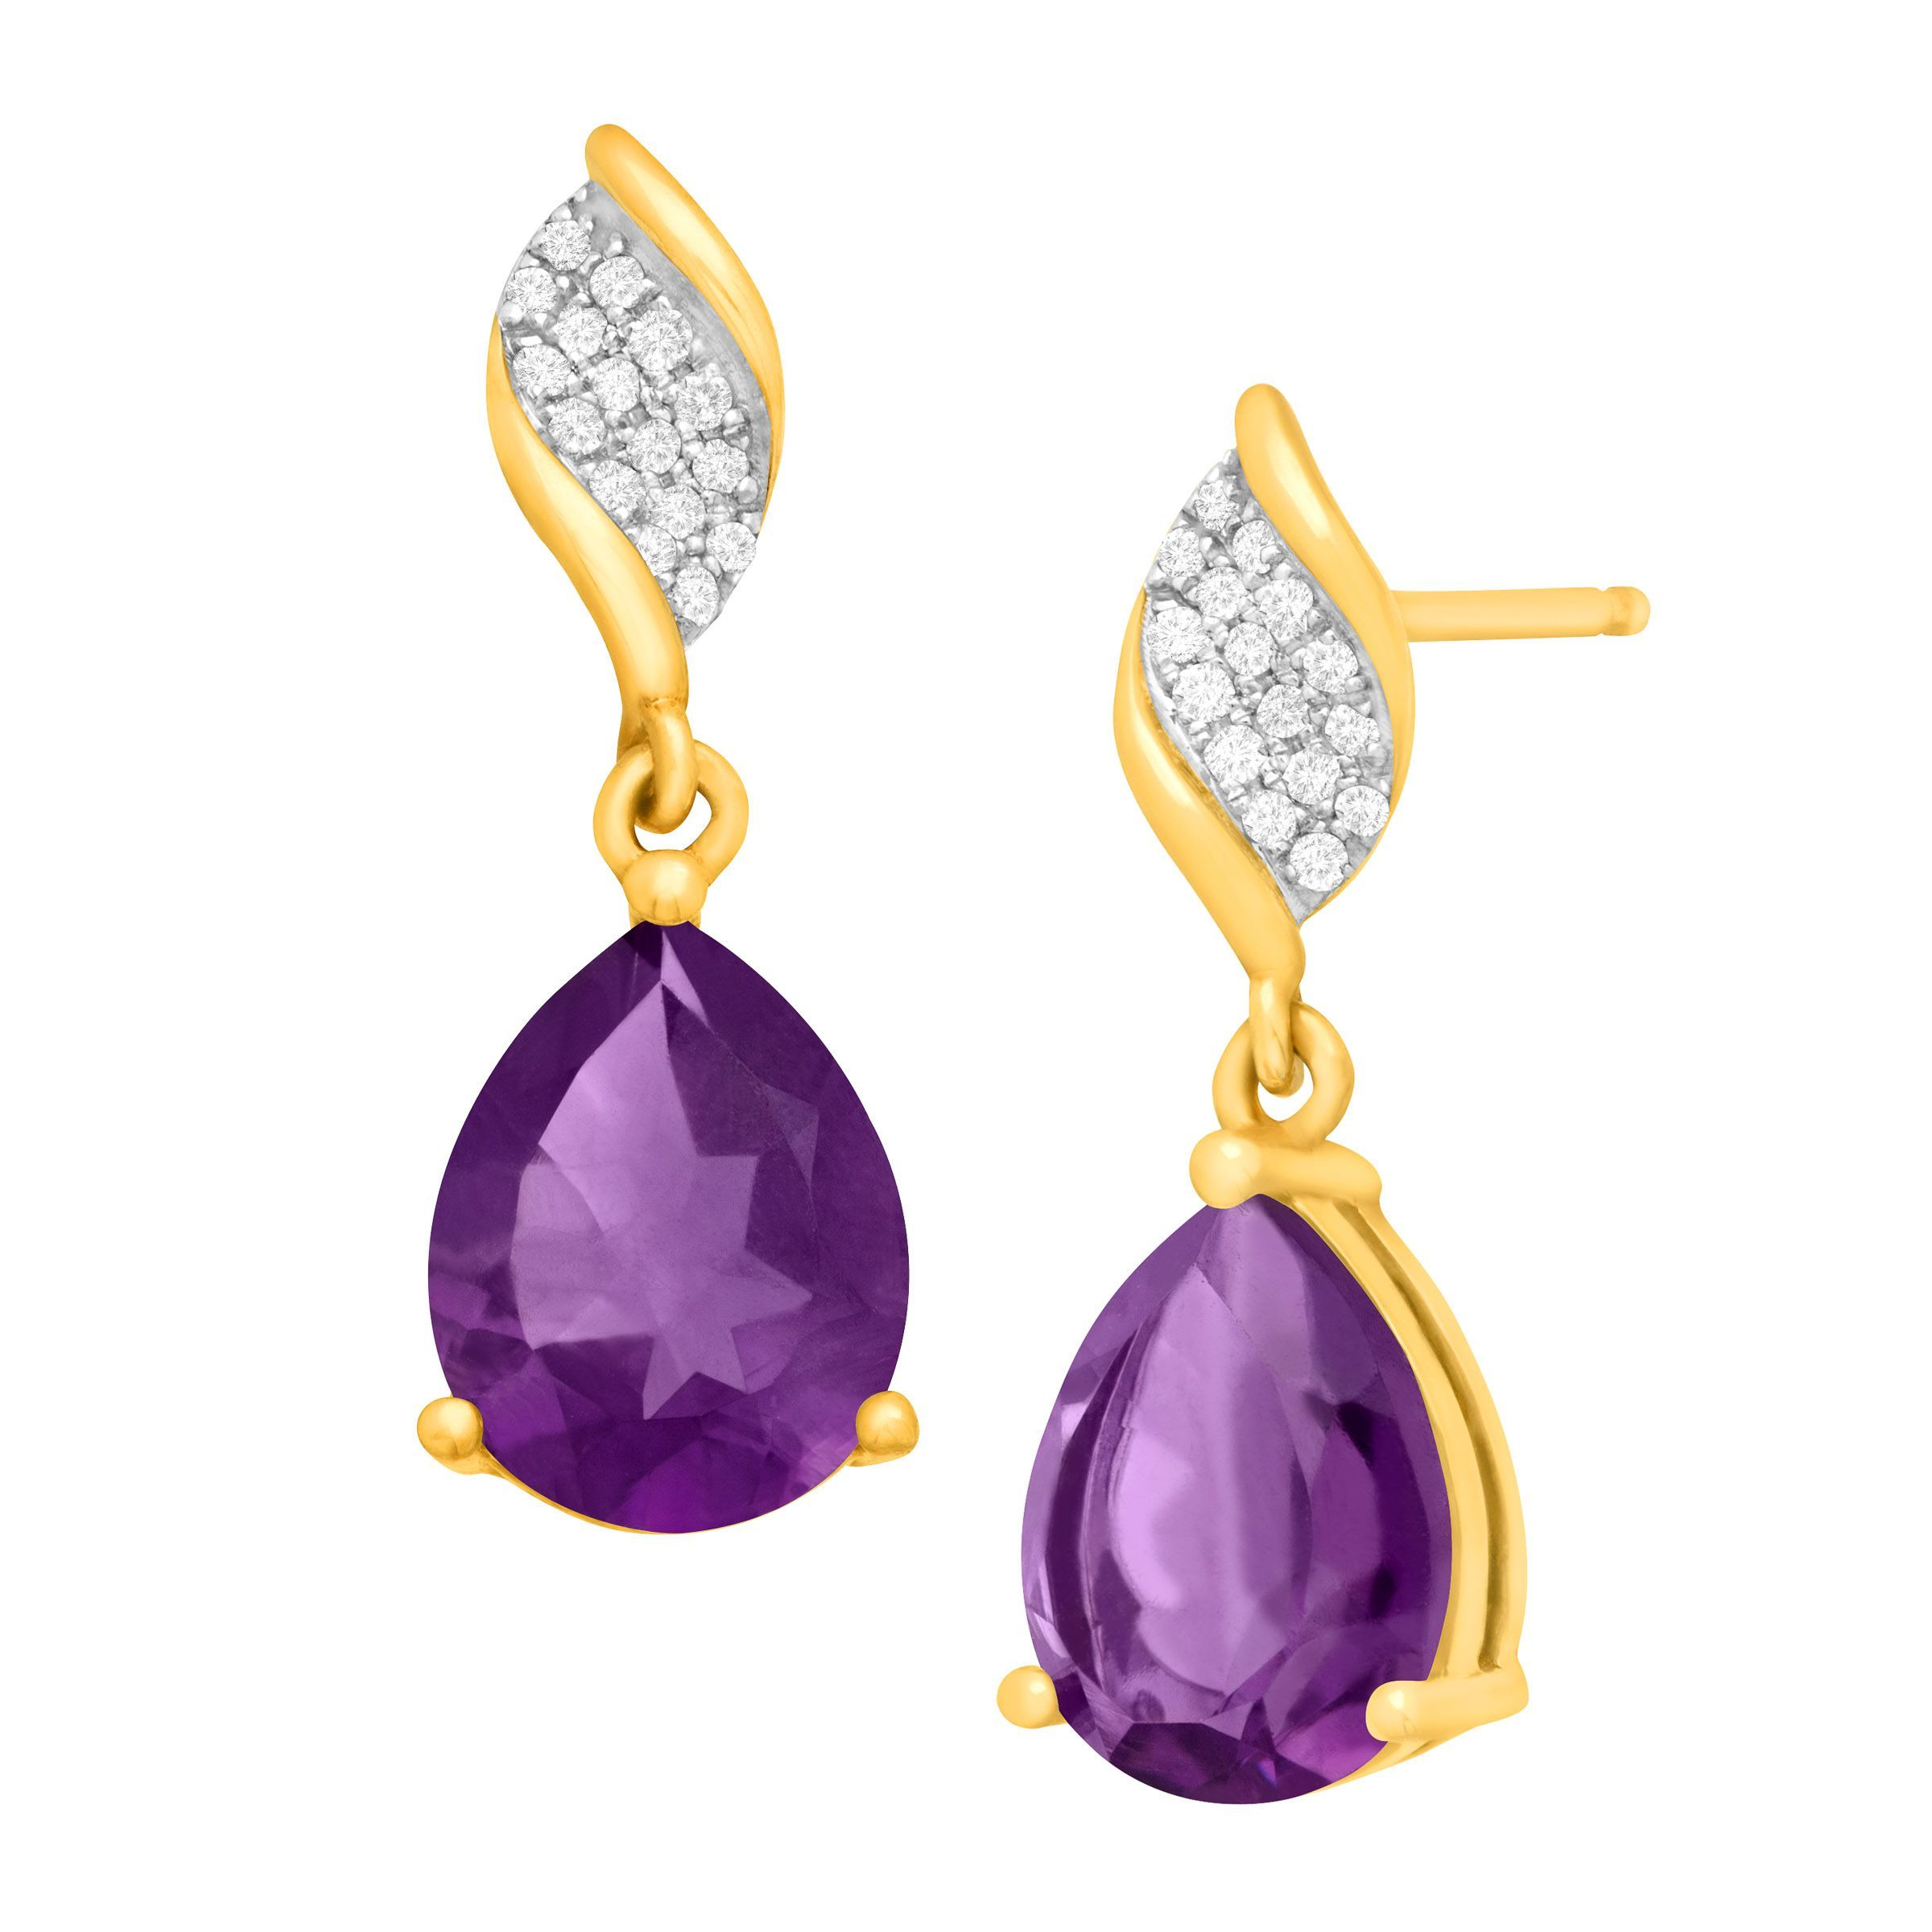 d23af6c1c Details about 3 1/8 ct Pear-Cut Natural Amethyst Drop Earrings with Diamonds  10k Yellow Gold